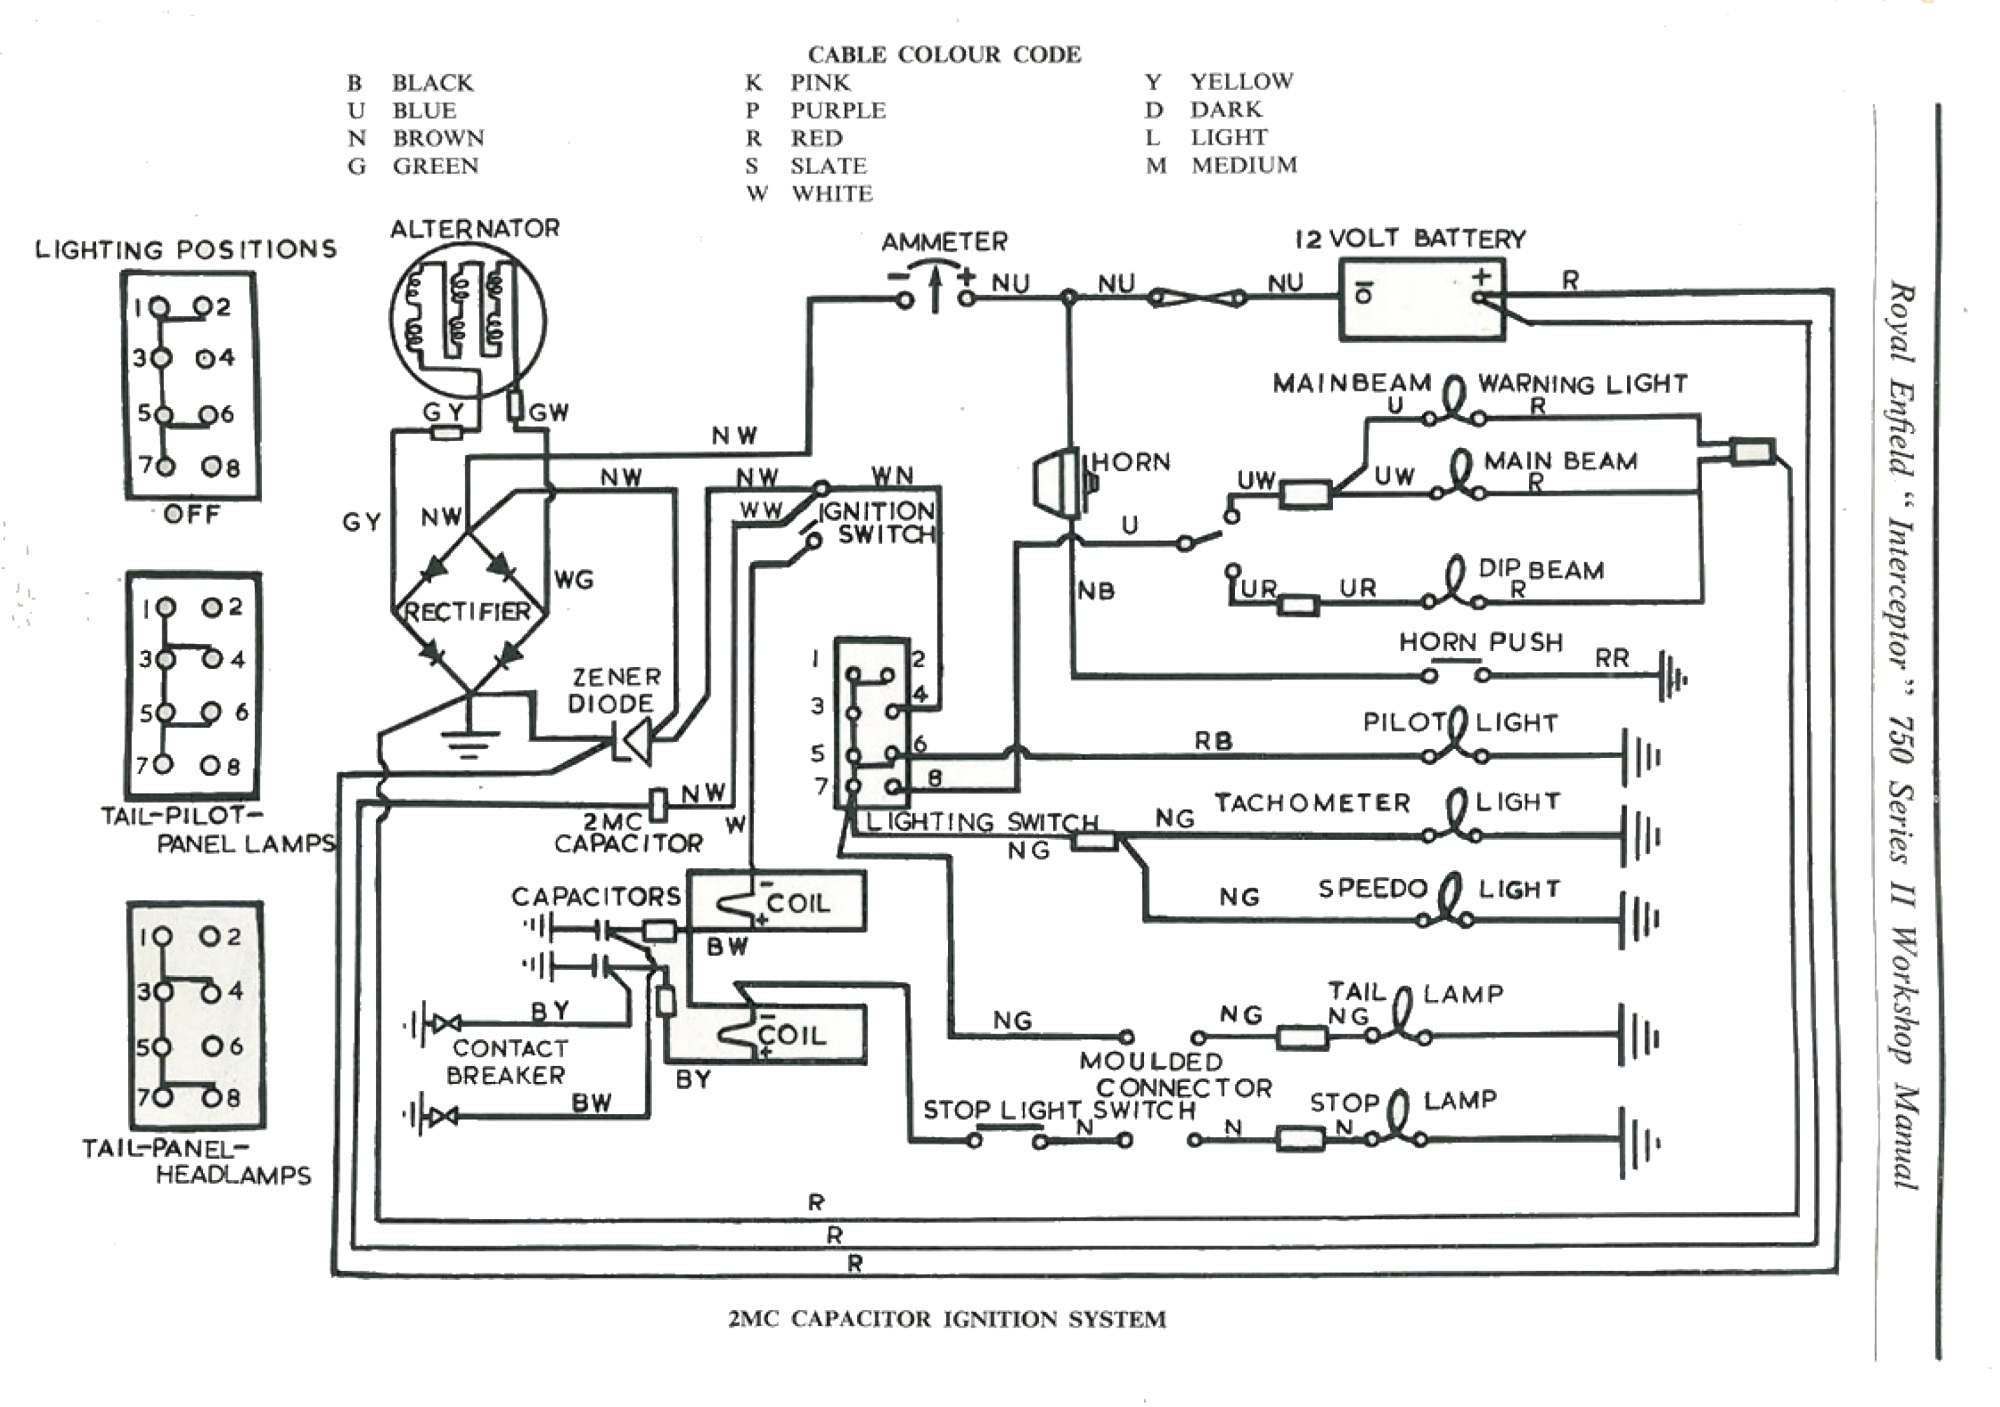 Bmw 750 Motorcycle Wiring Diagram. Bmw. Auto Wiring Diagram